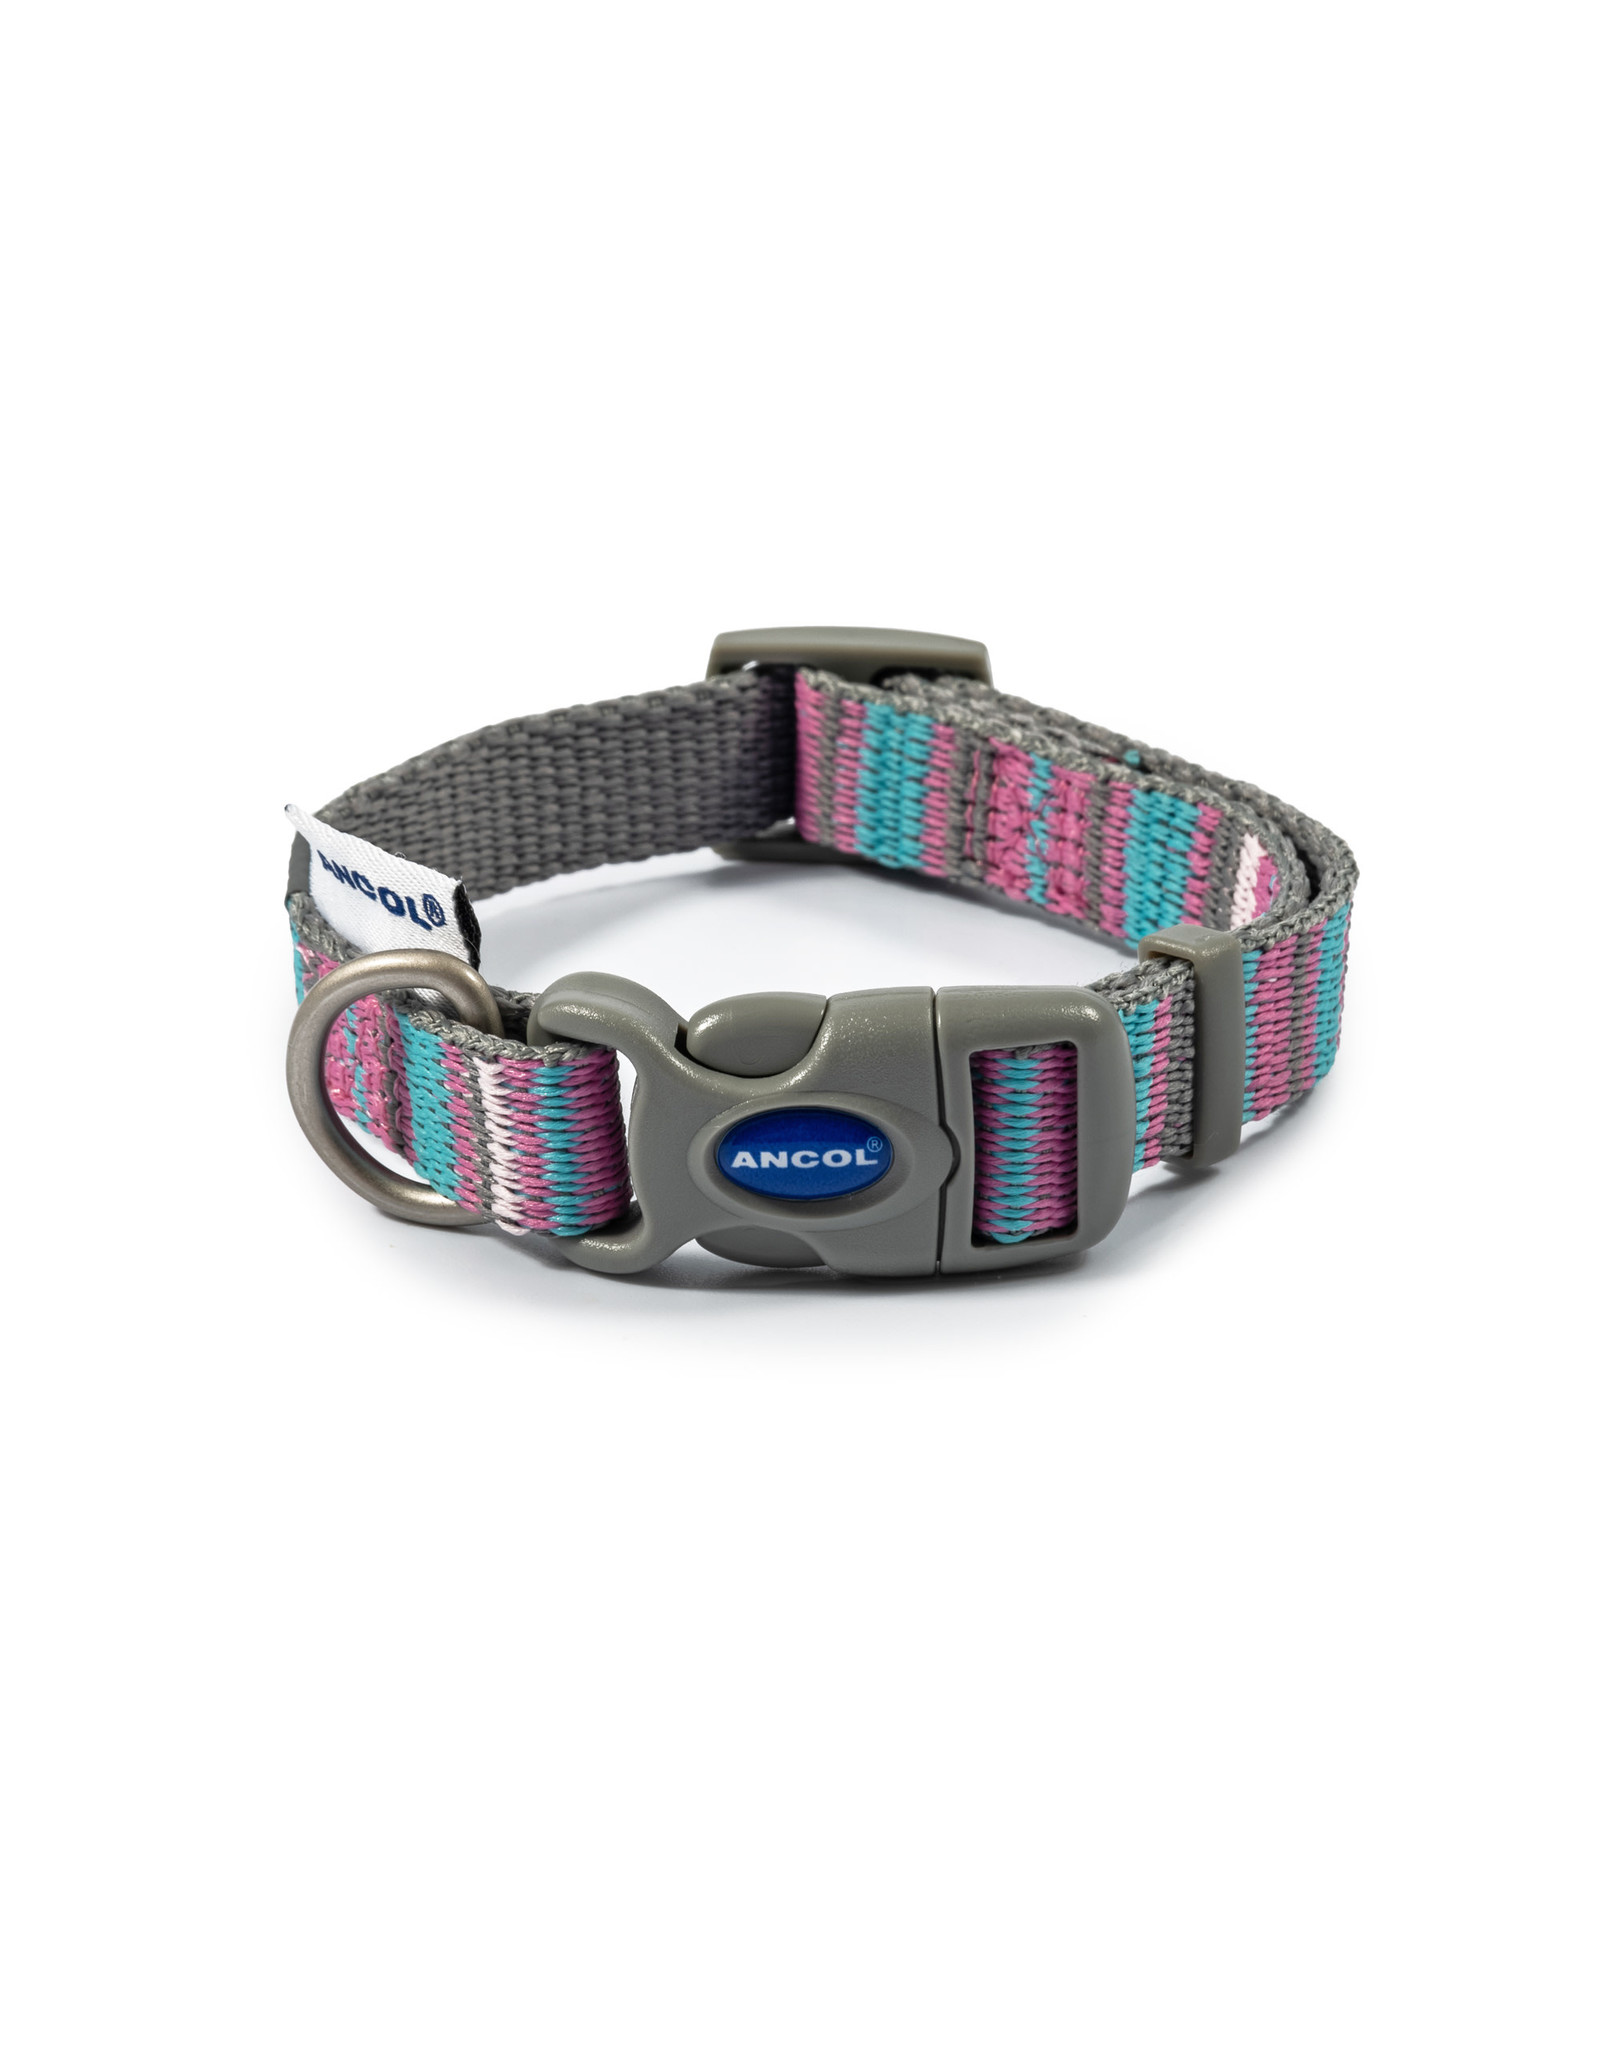 Ancol Adjustable Dog Collar Made From Recycled Materials, Pink Candy Stripe